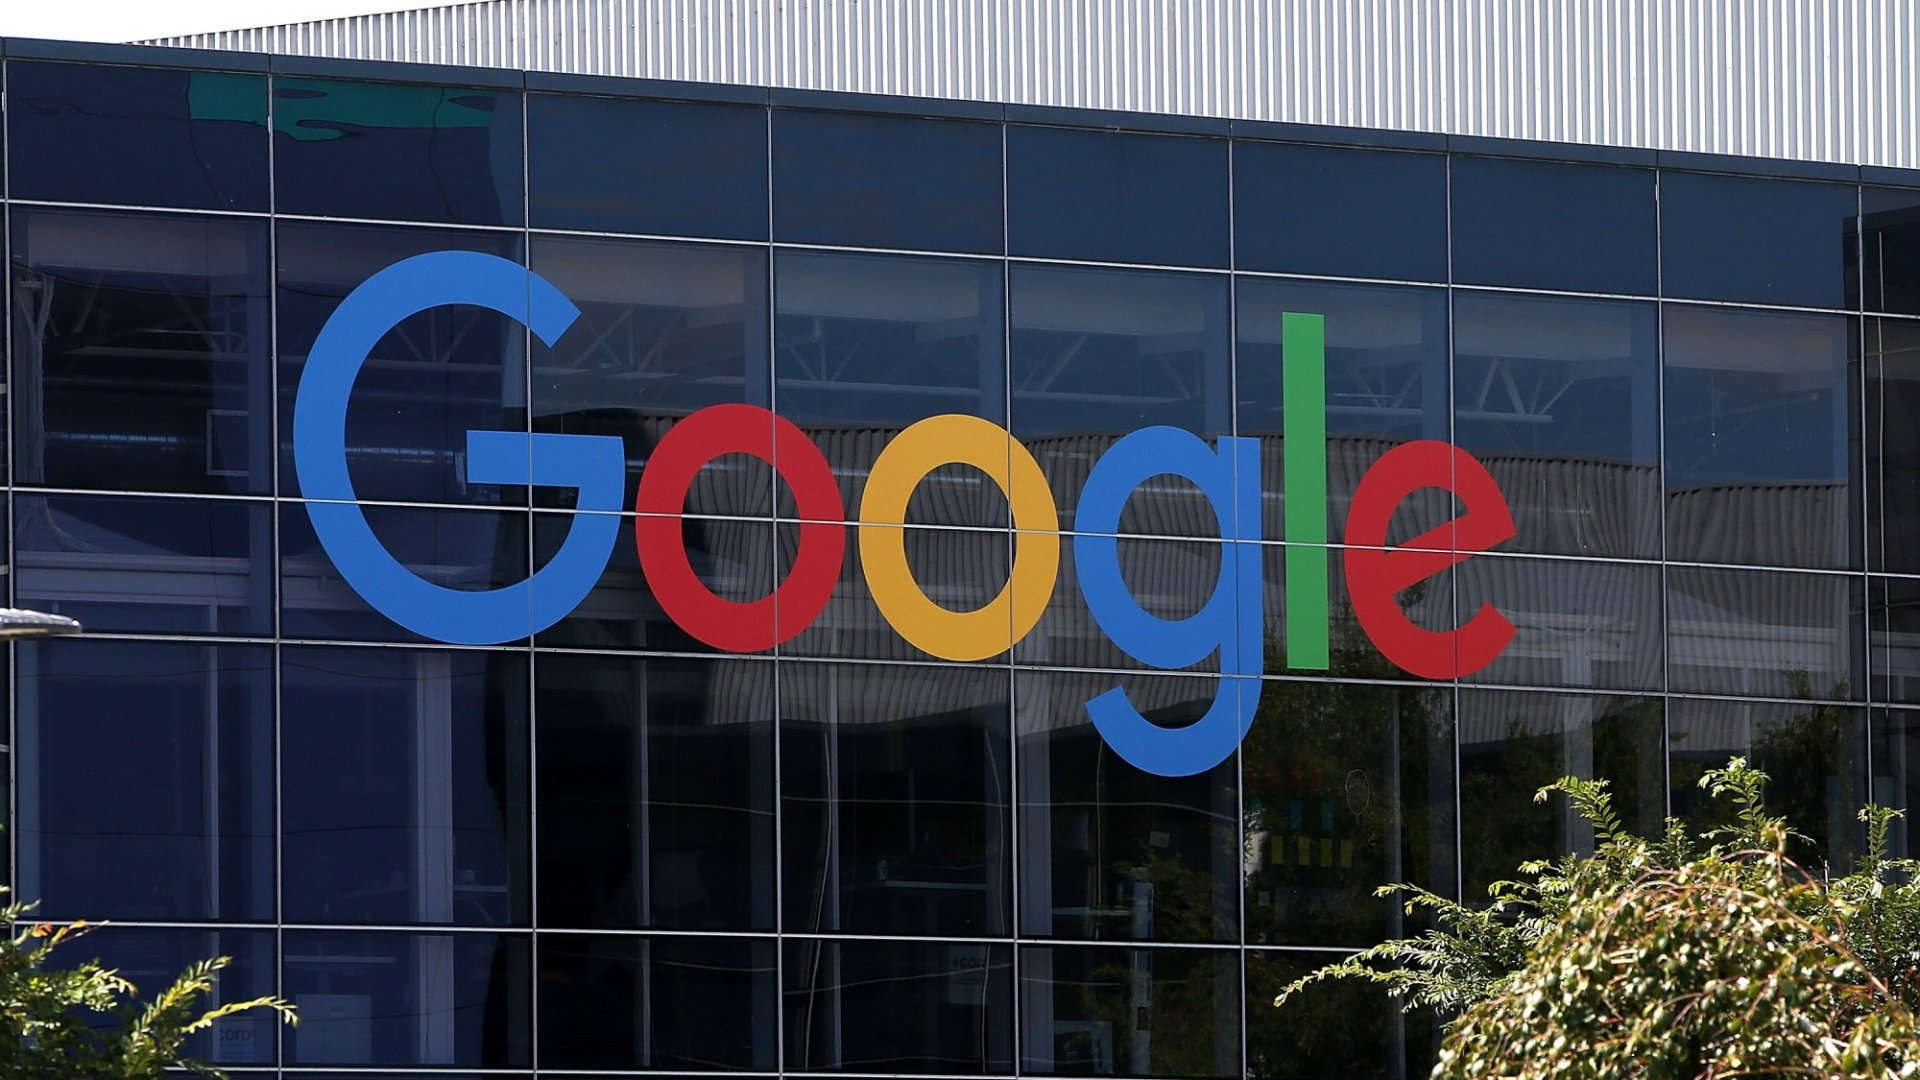 Google: 'No Gender Pay Gap' Found After Jobs Analysis in 2016